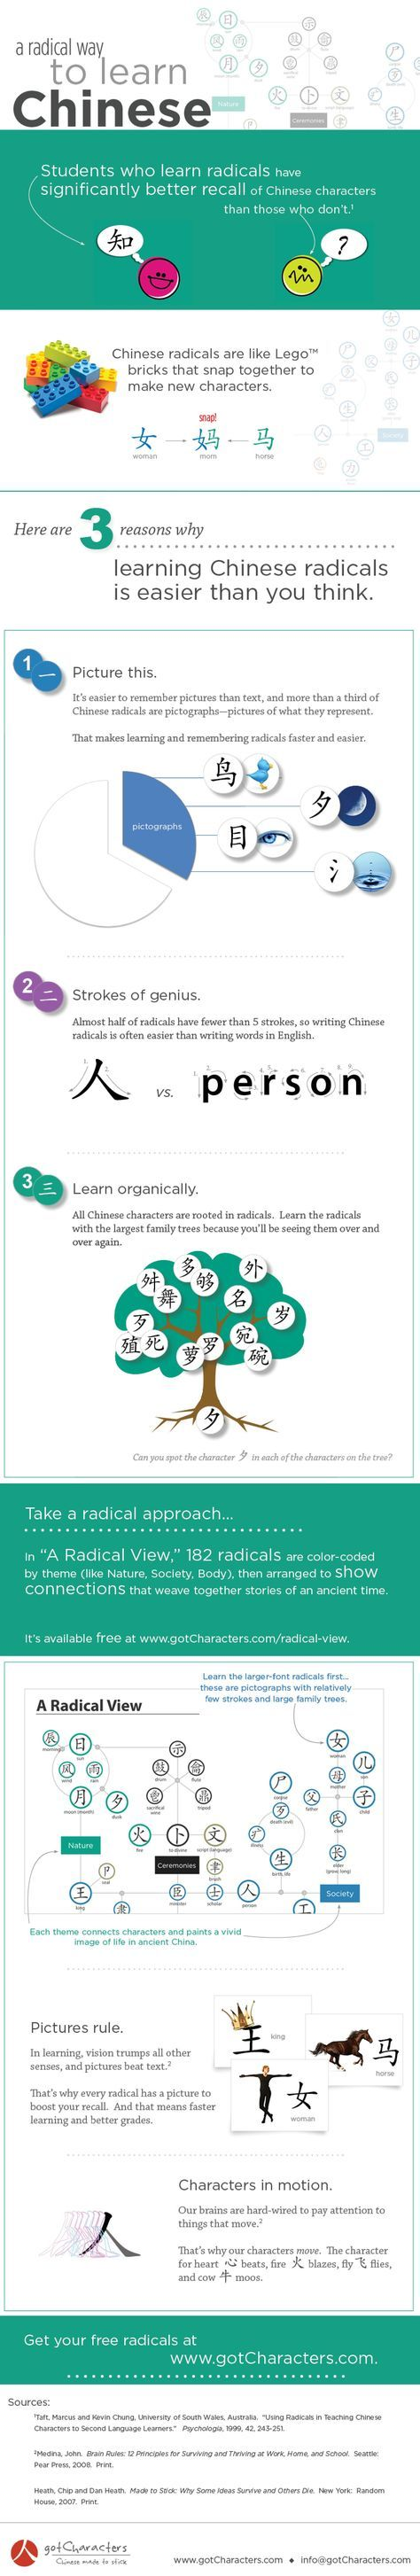 The 7 Best Websites to Learn Chinese - FluentU